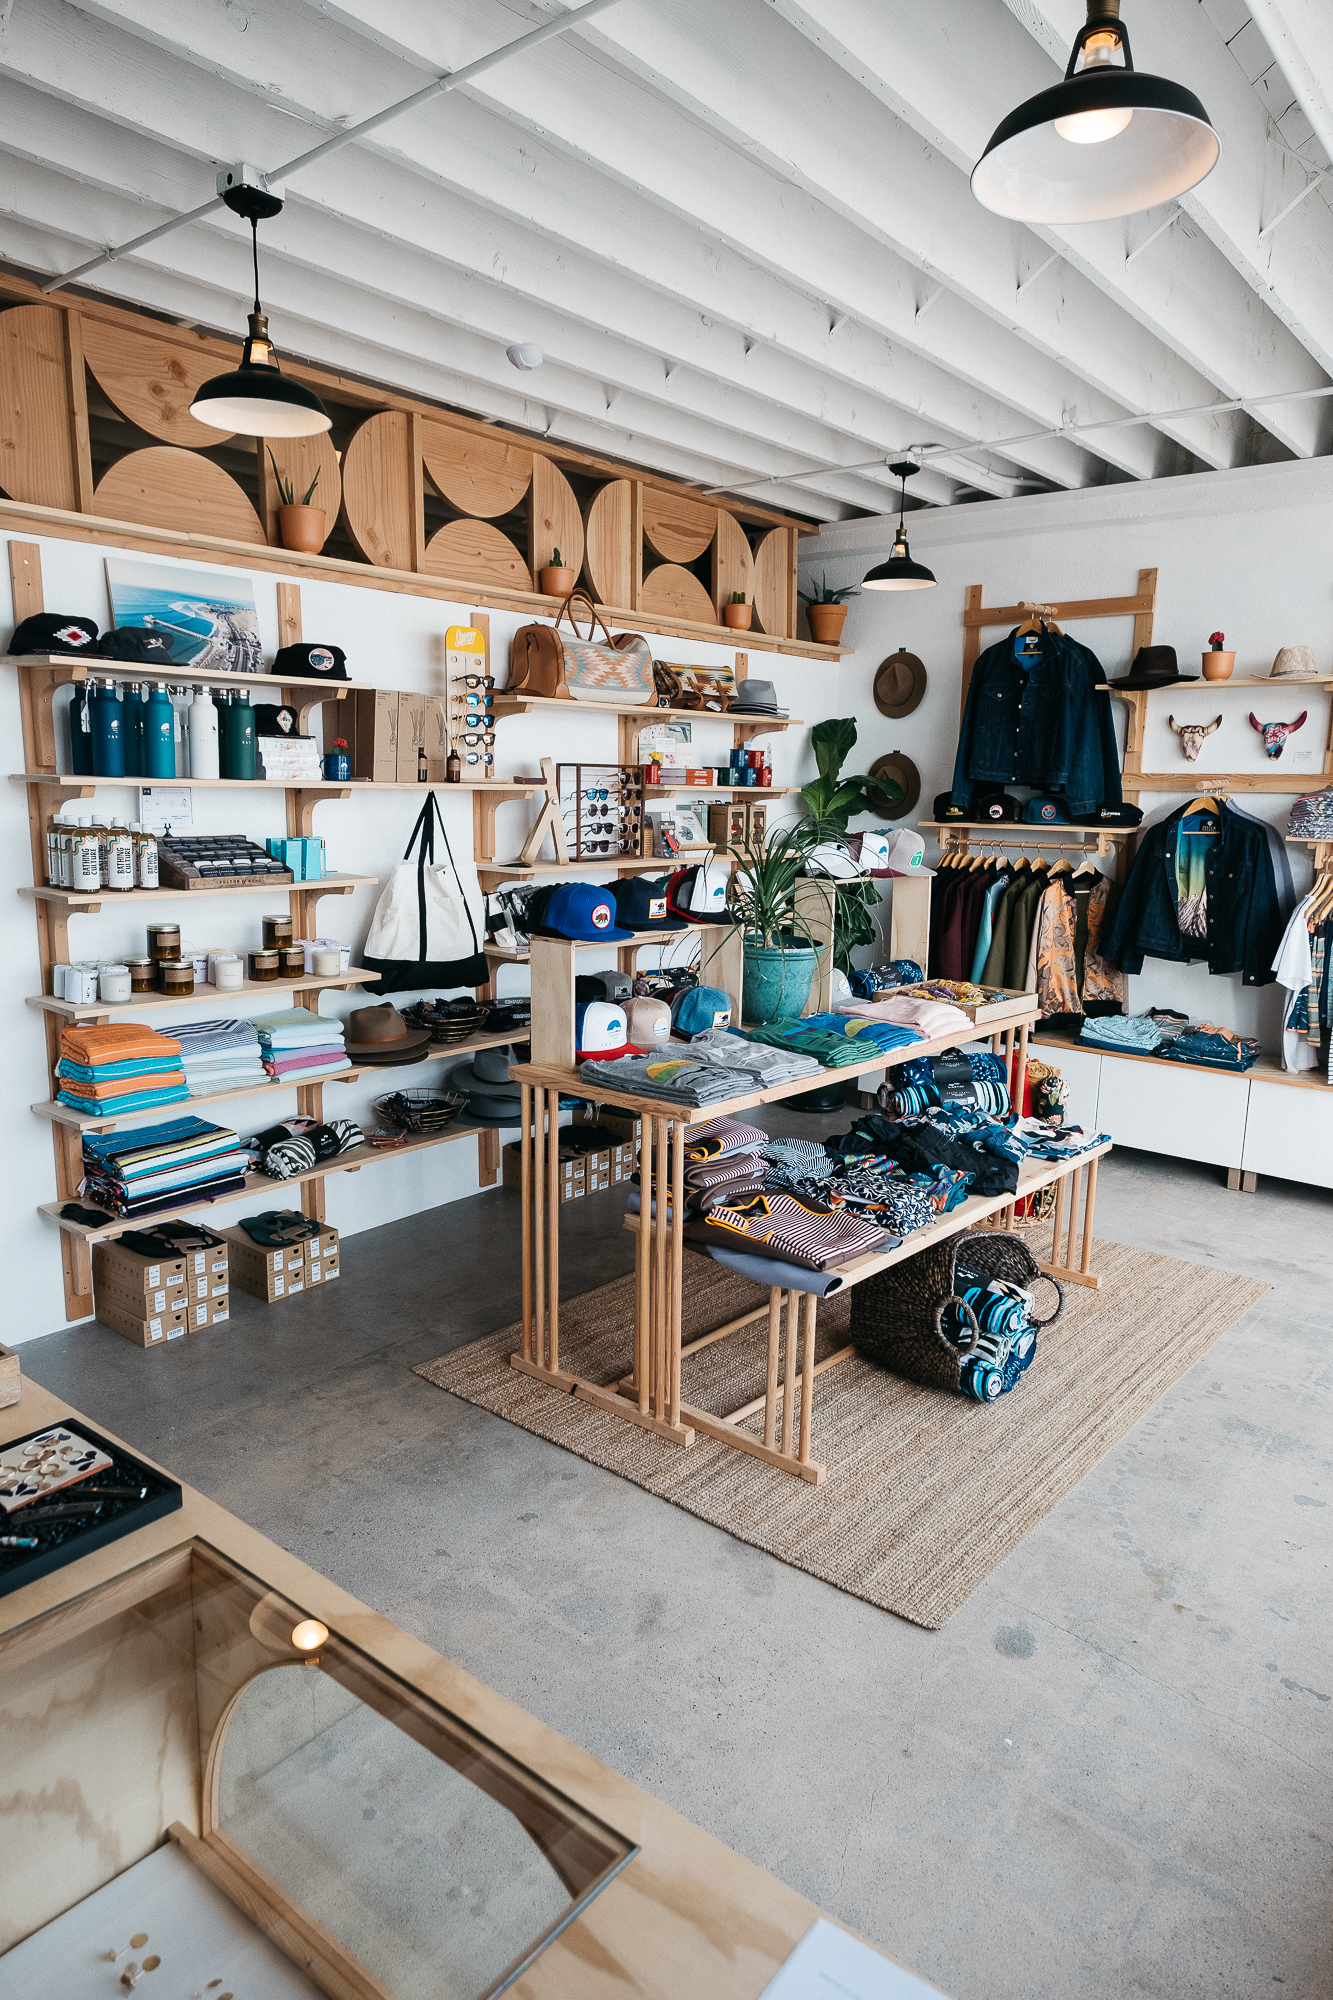 A lit, artisanaly curated space for extra woke surf people. All you need. Photo: Ian Zamora.